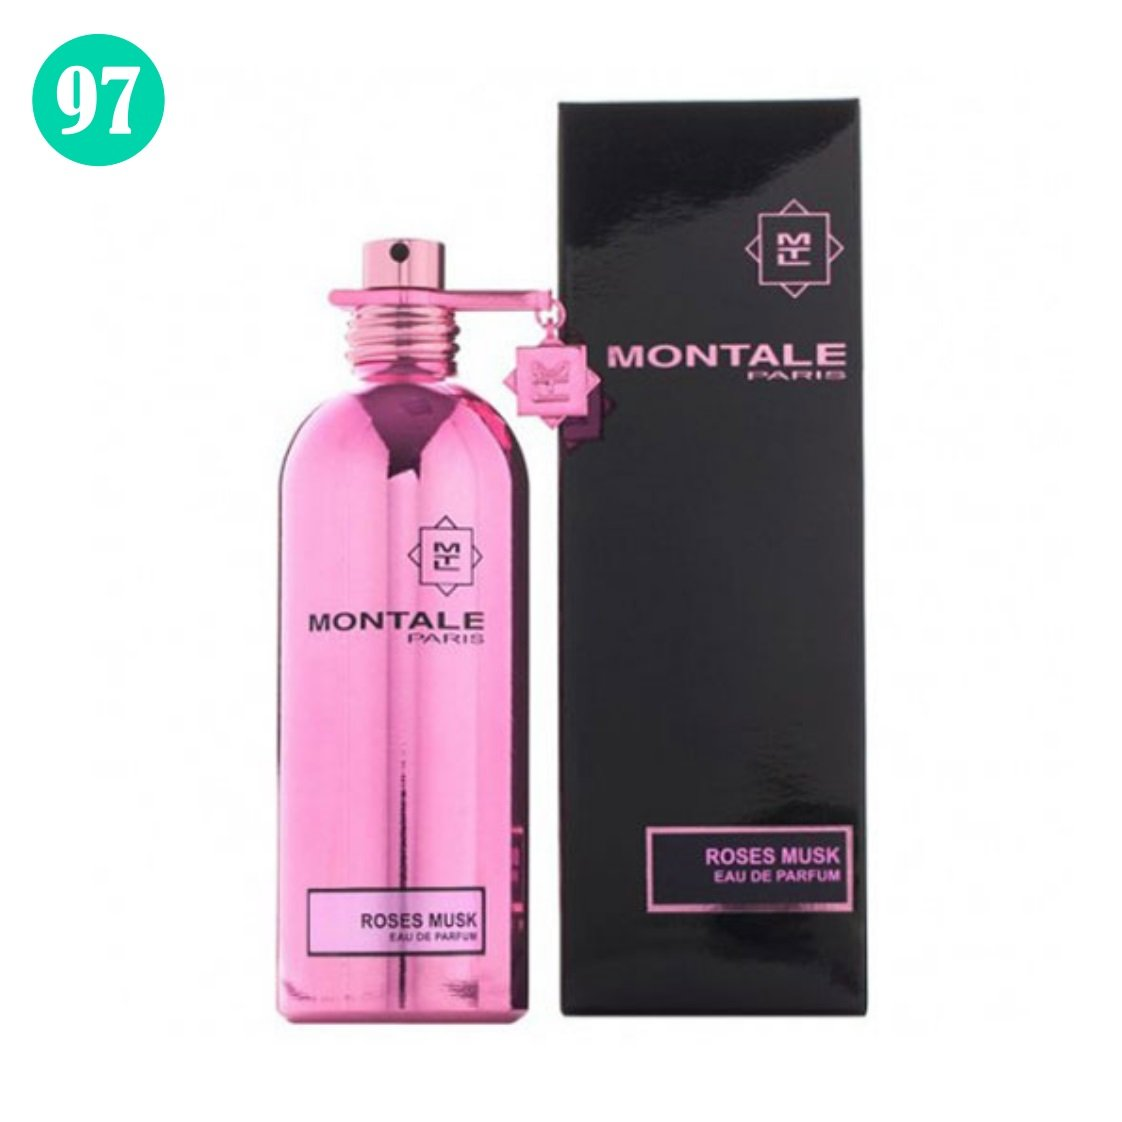 ROSES MUSK – Montale donna